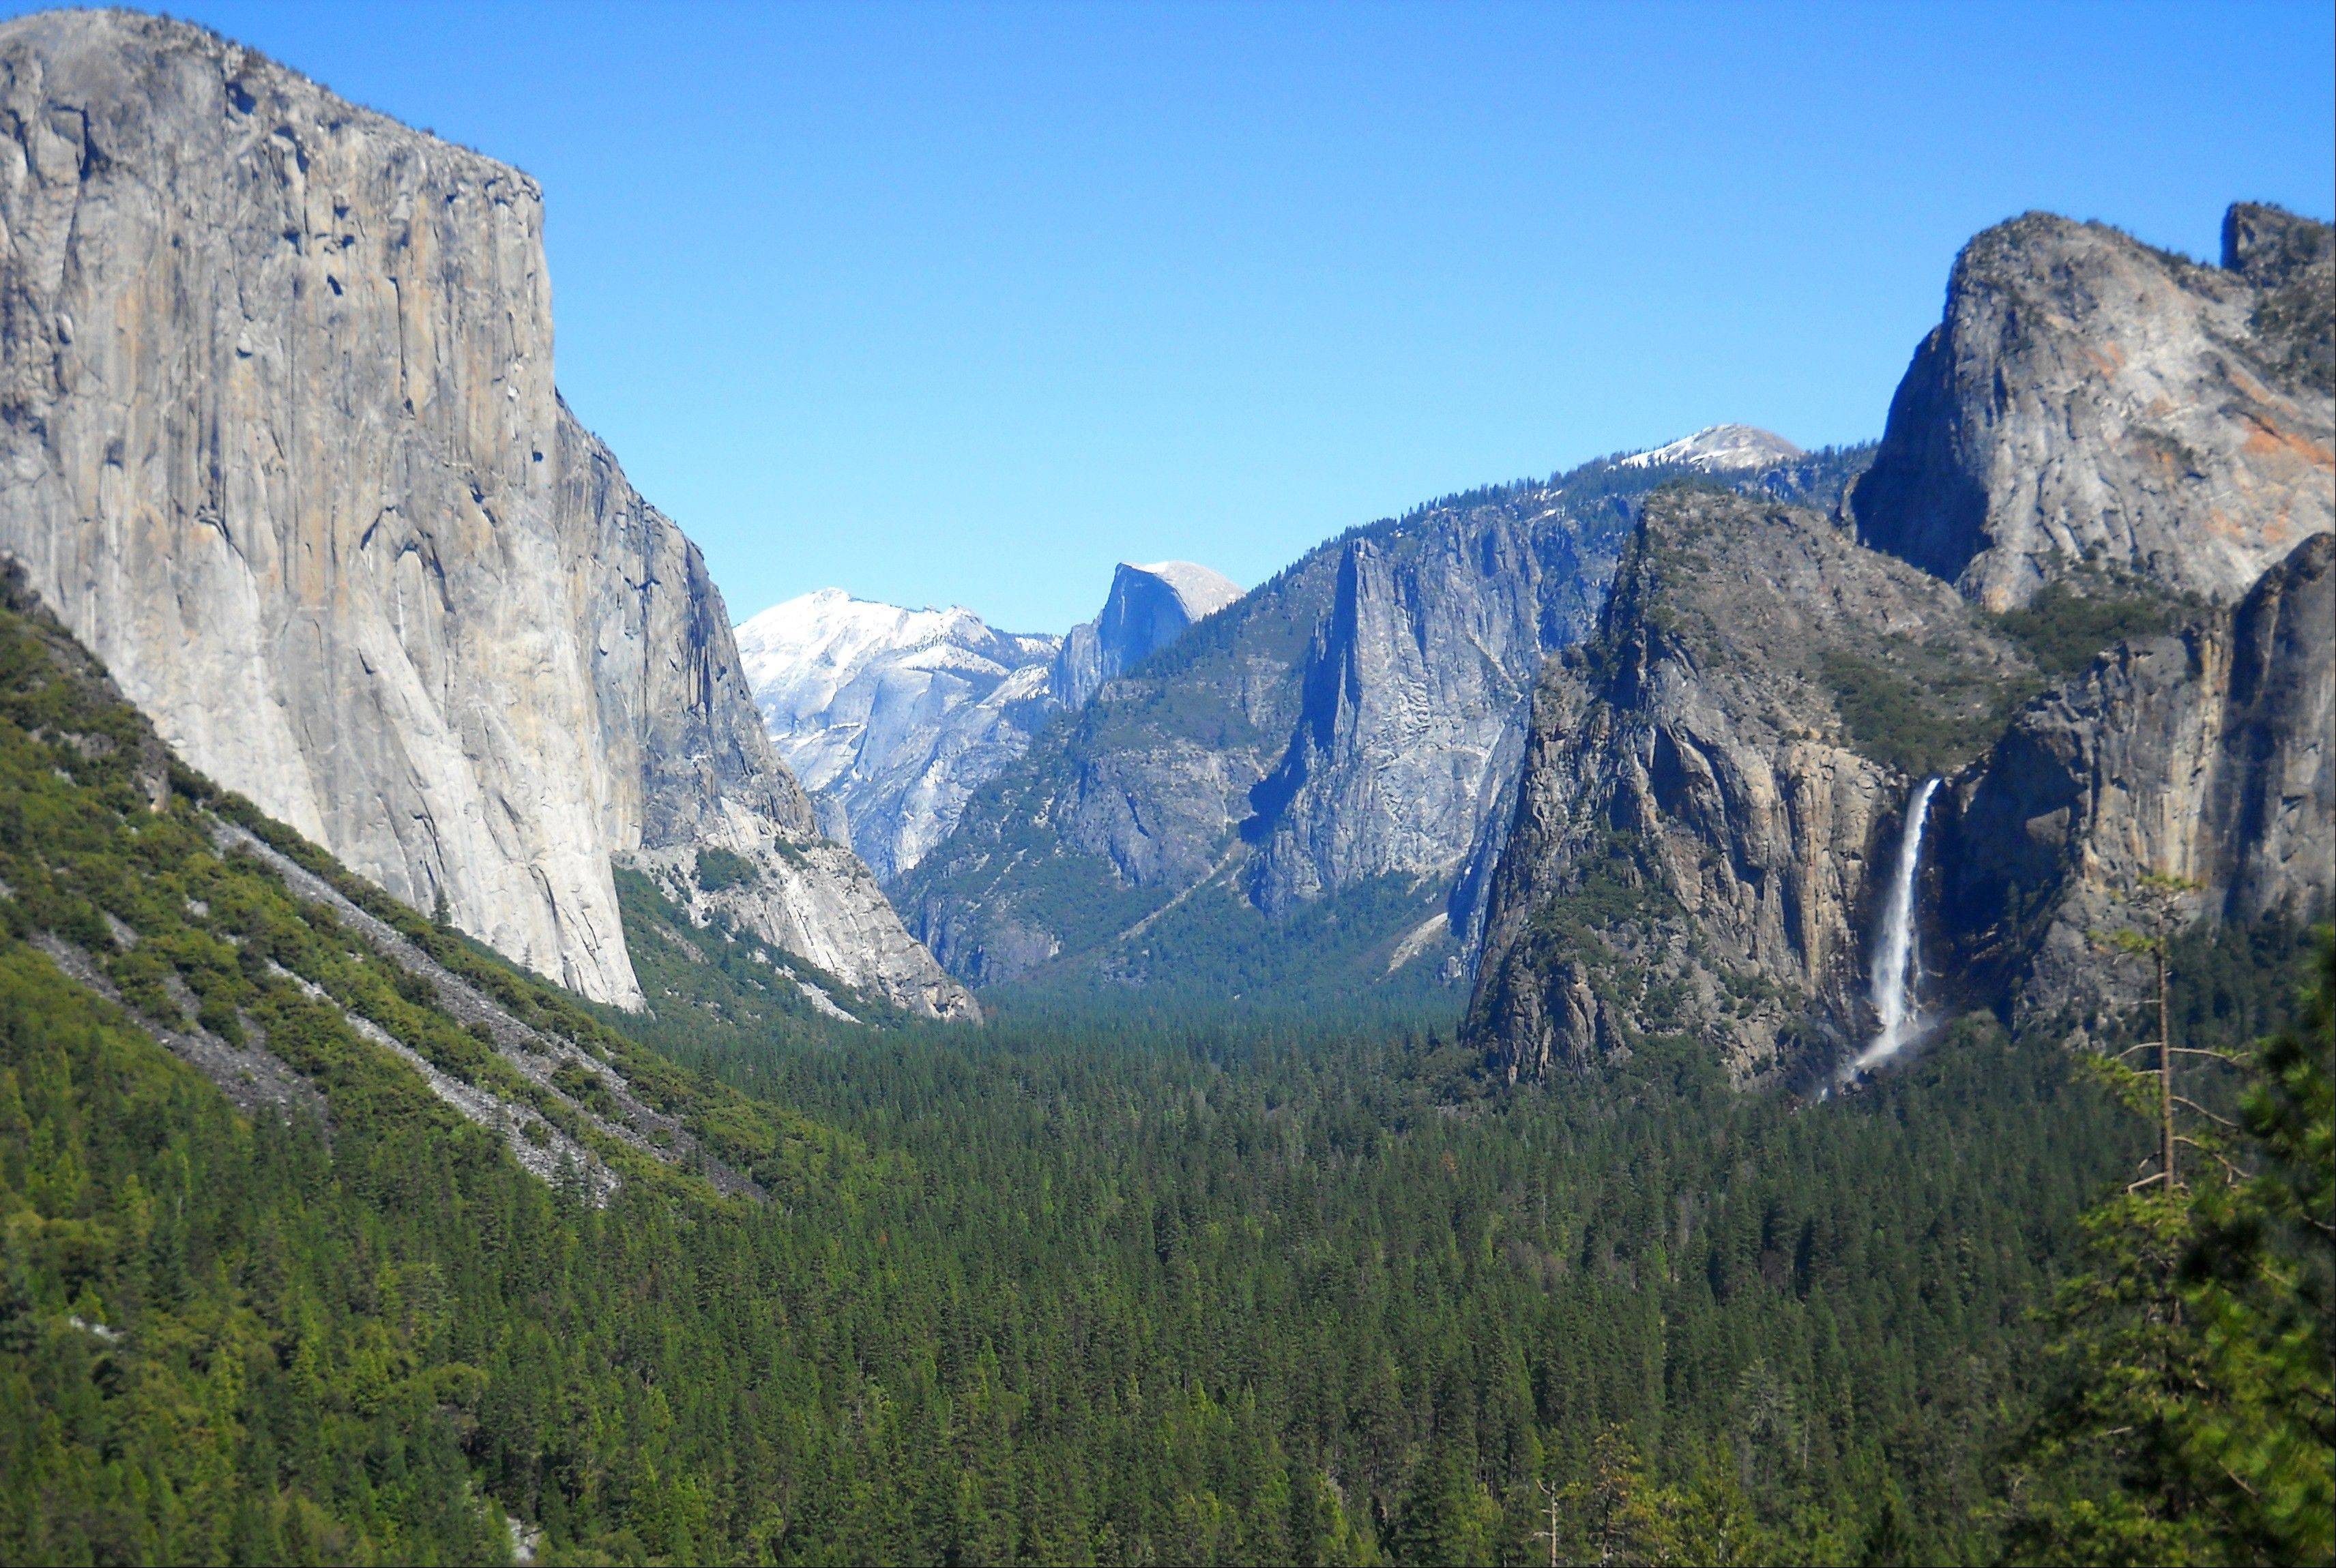 Yosemite Valley as seen from Tunnel View with three of Yosemite National Park's best-known natural attractions: The El Capitan summit on the left, the granite peak known as Half Dome in the distant center, and Bridalveil Fall on the right.